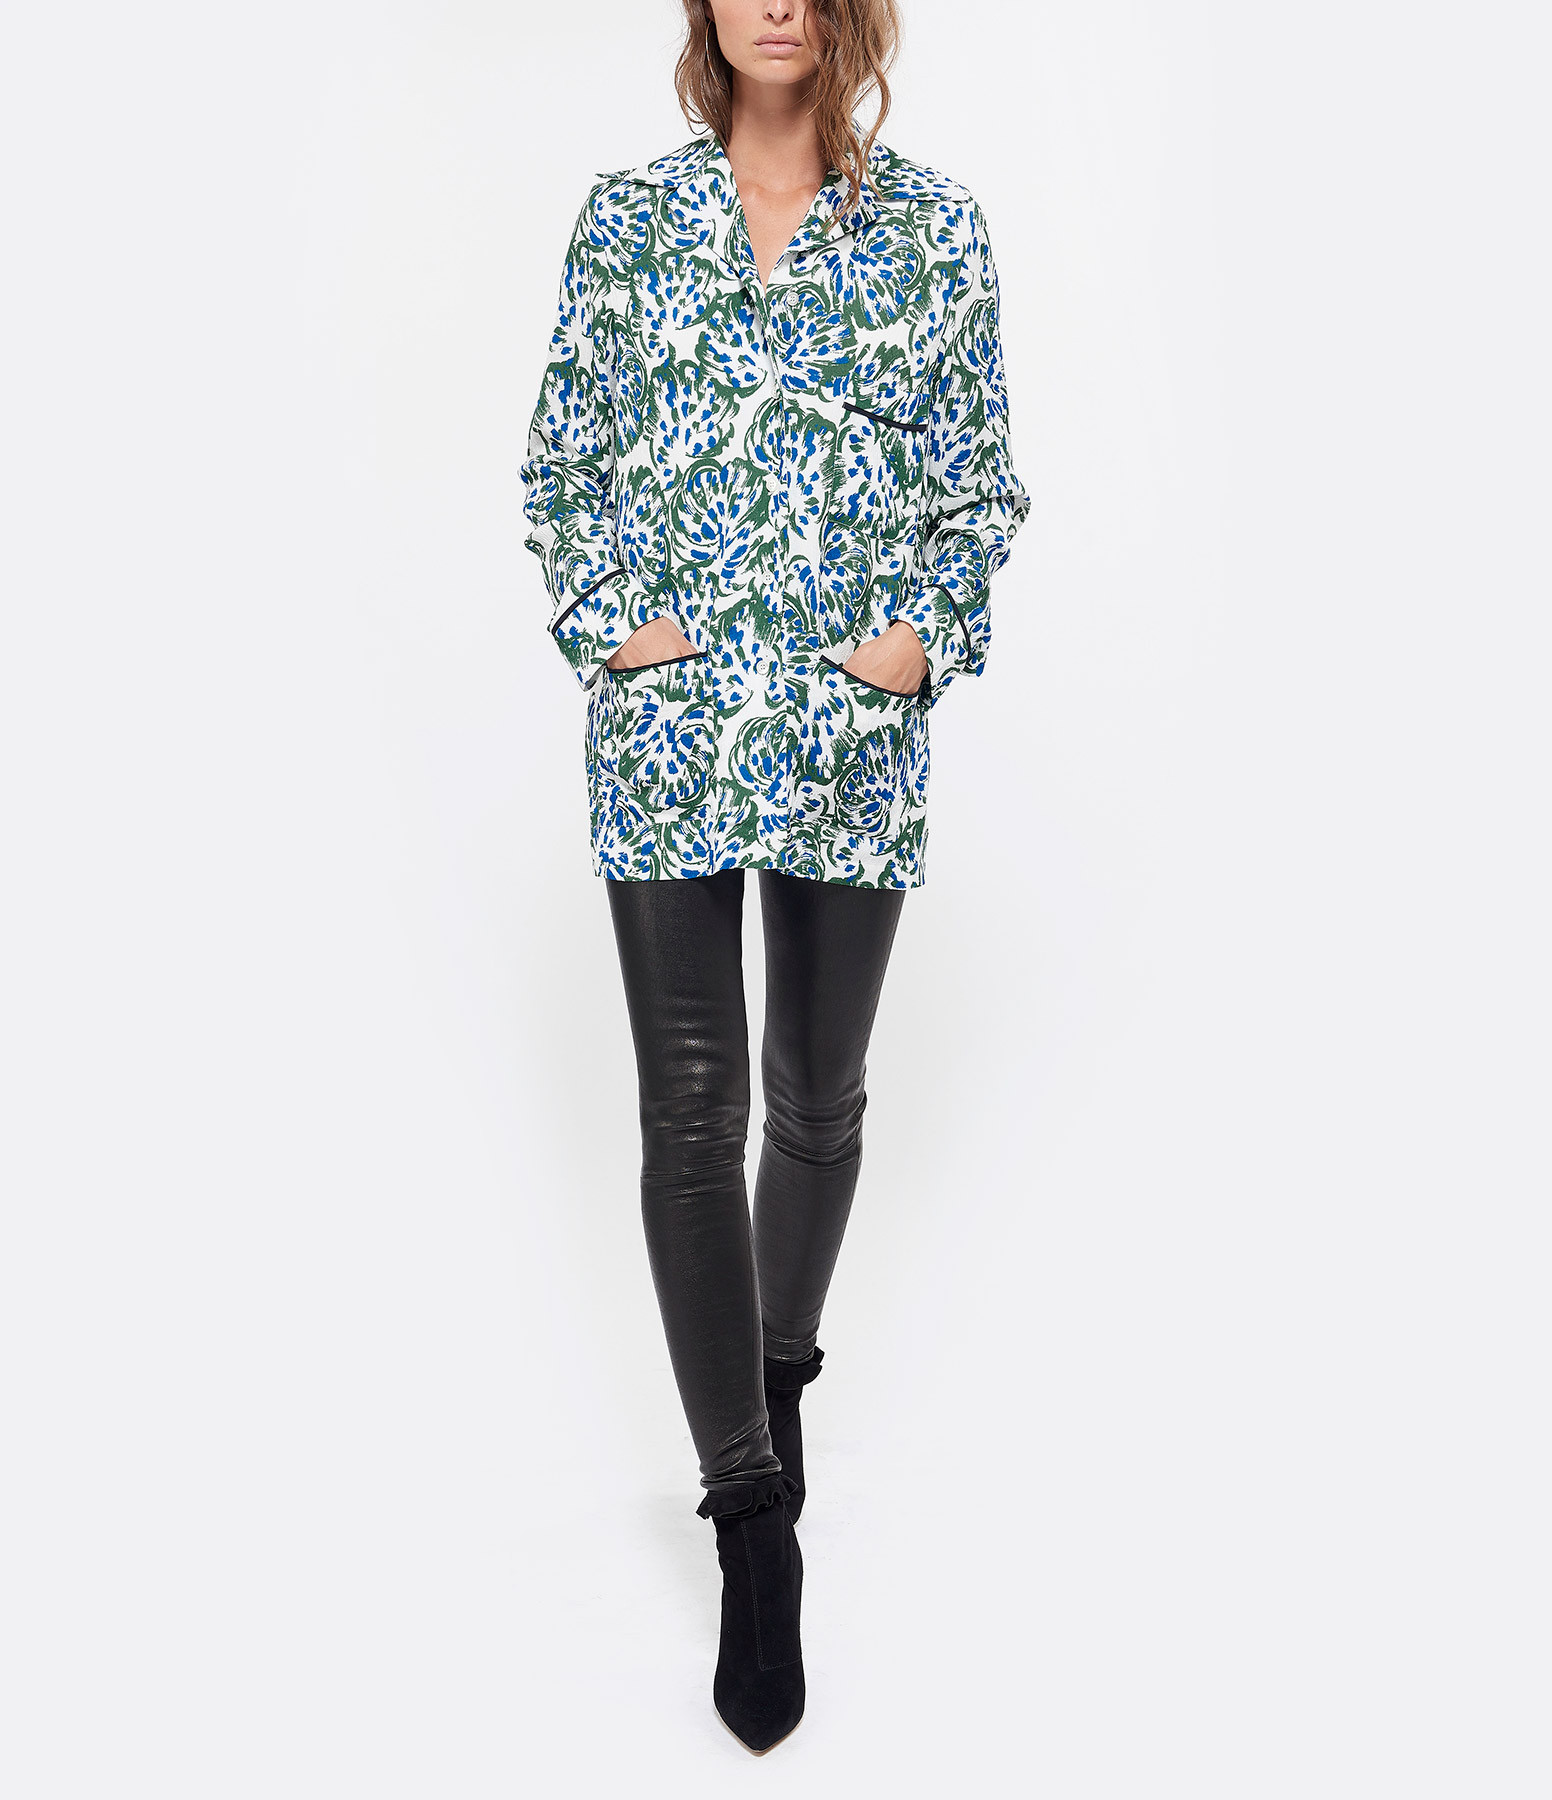 VICTORIA VICTORIA BECKHAM - Chemise Pyjama Abstract Floral